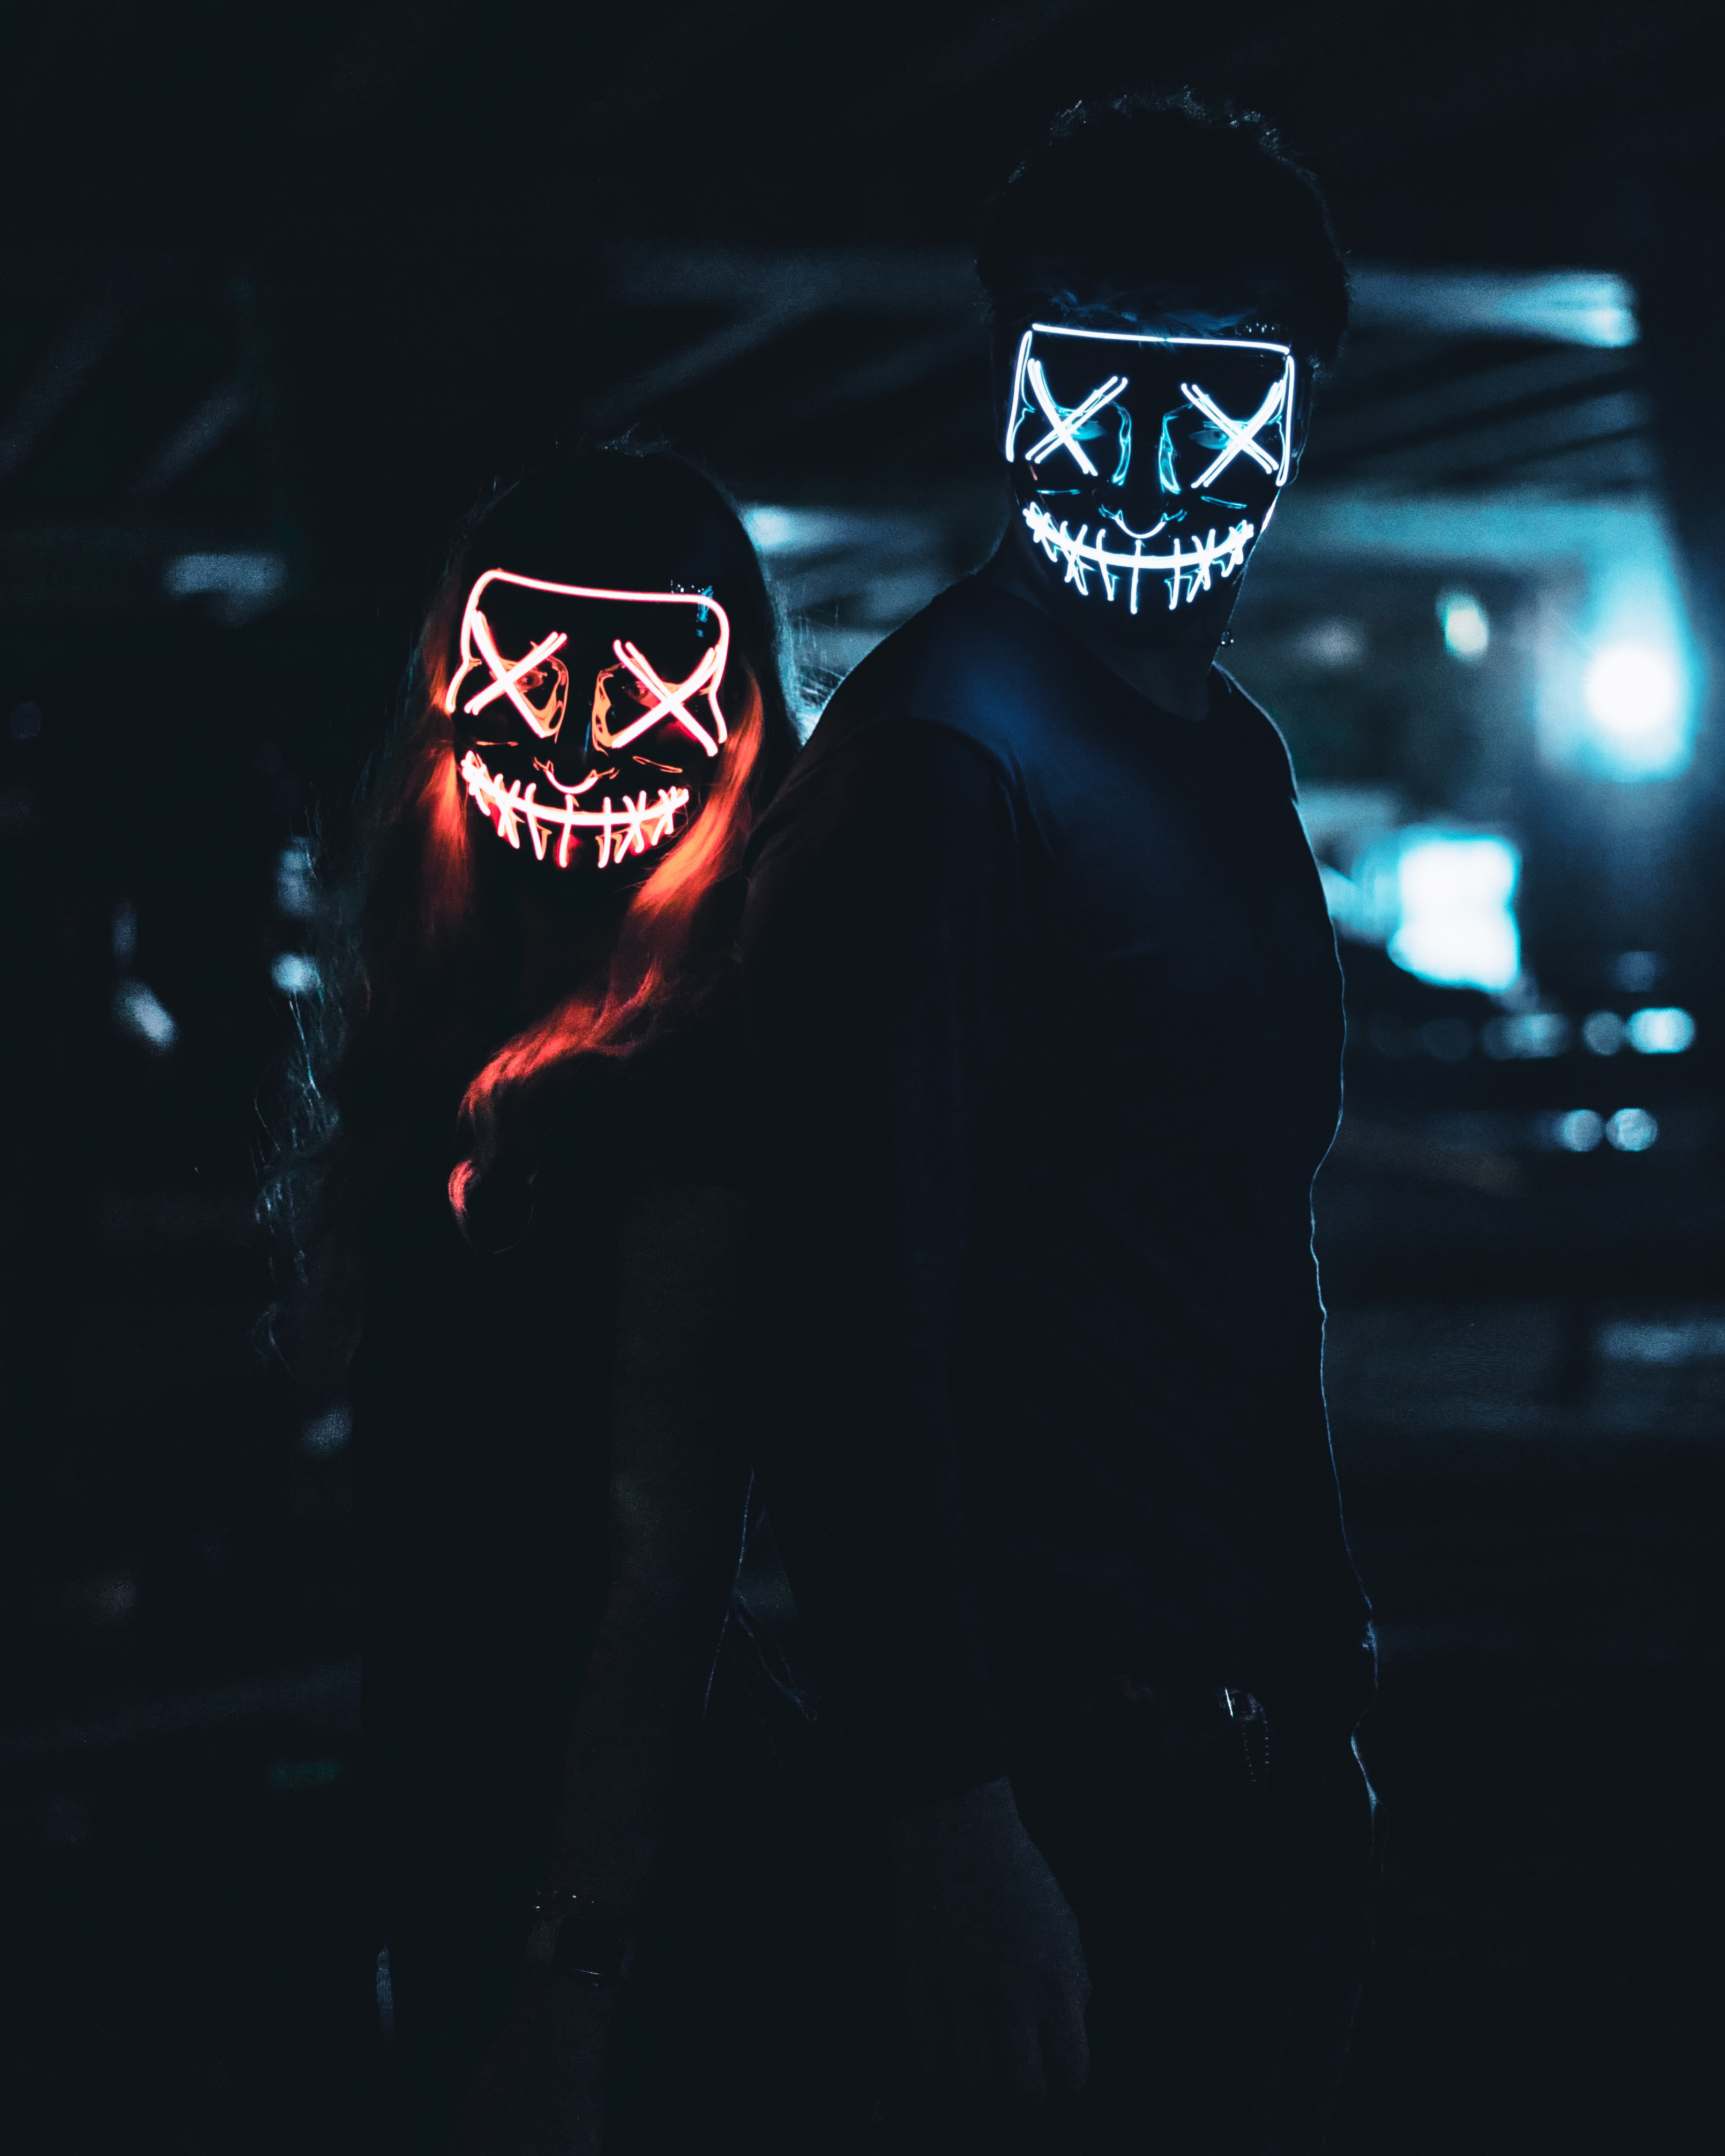 Two people with light-up scary face masks